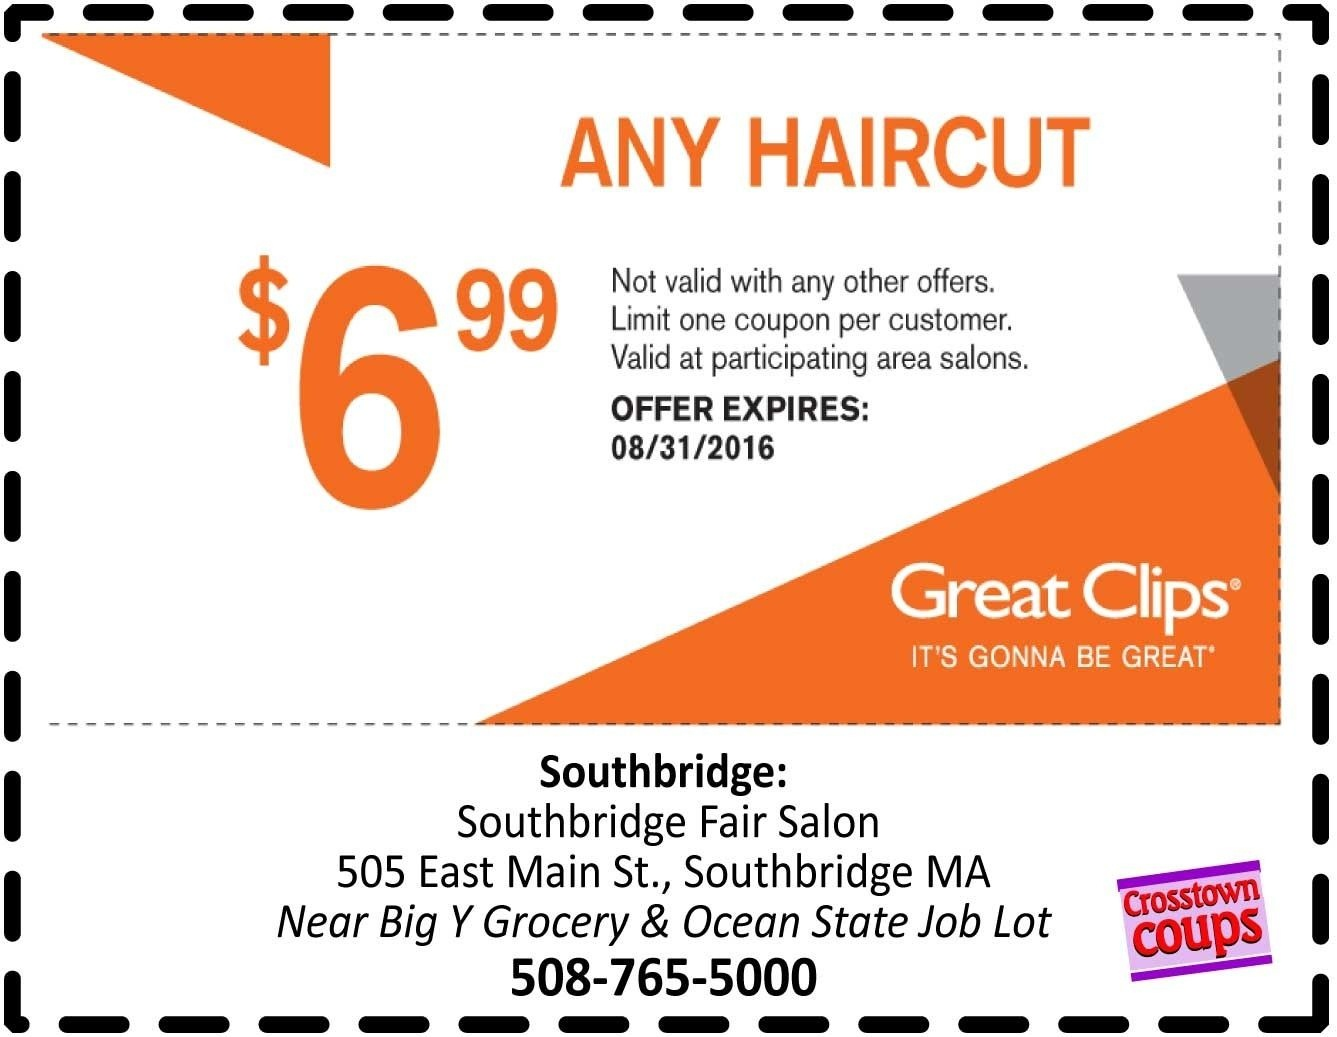 Haircut Coupons 2017 Sport Clips Printable Coupons 2018 | Hairstyles - Sports Clips Free Haircut Printable Coupon